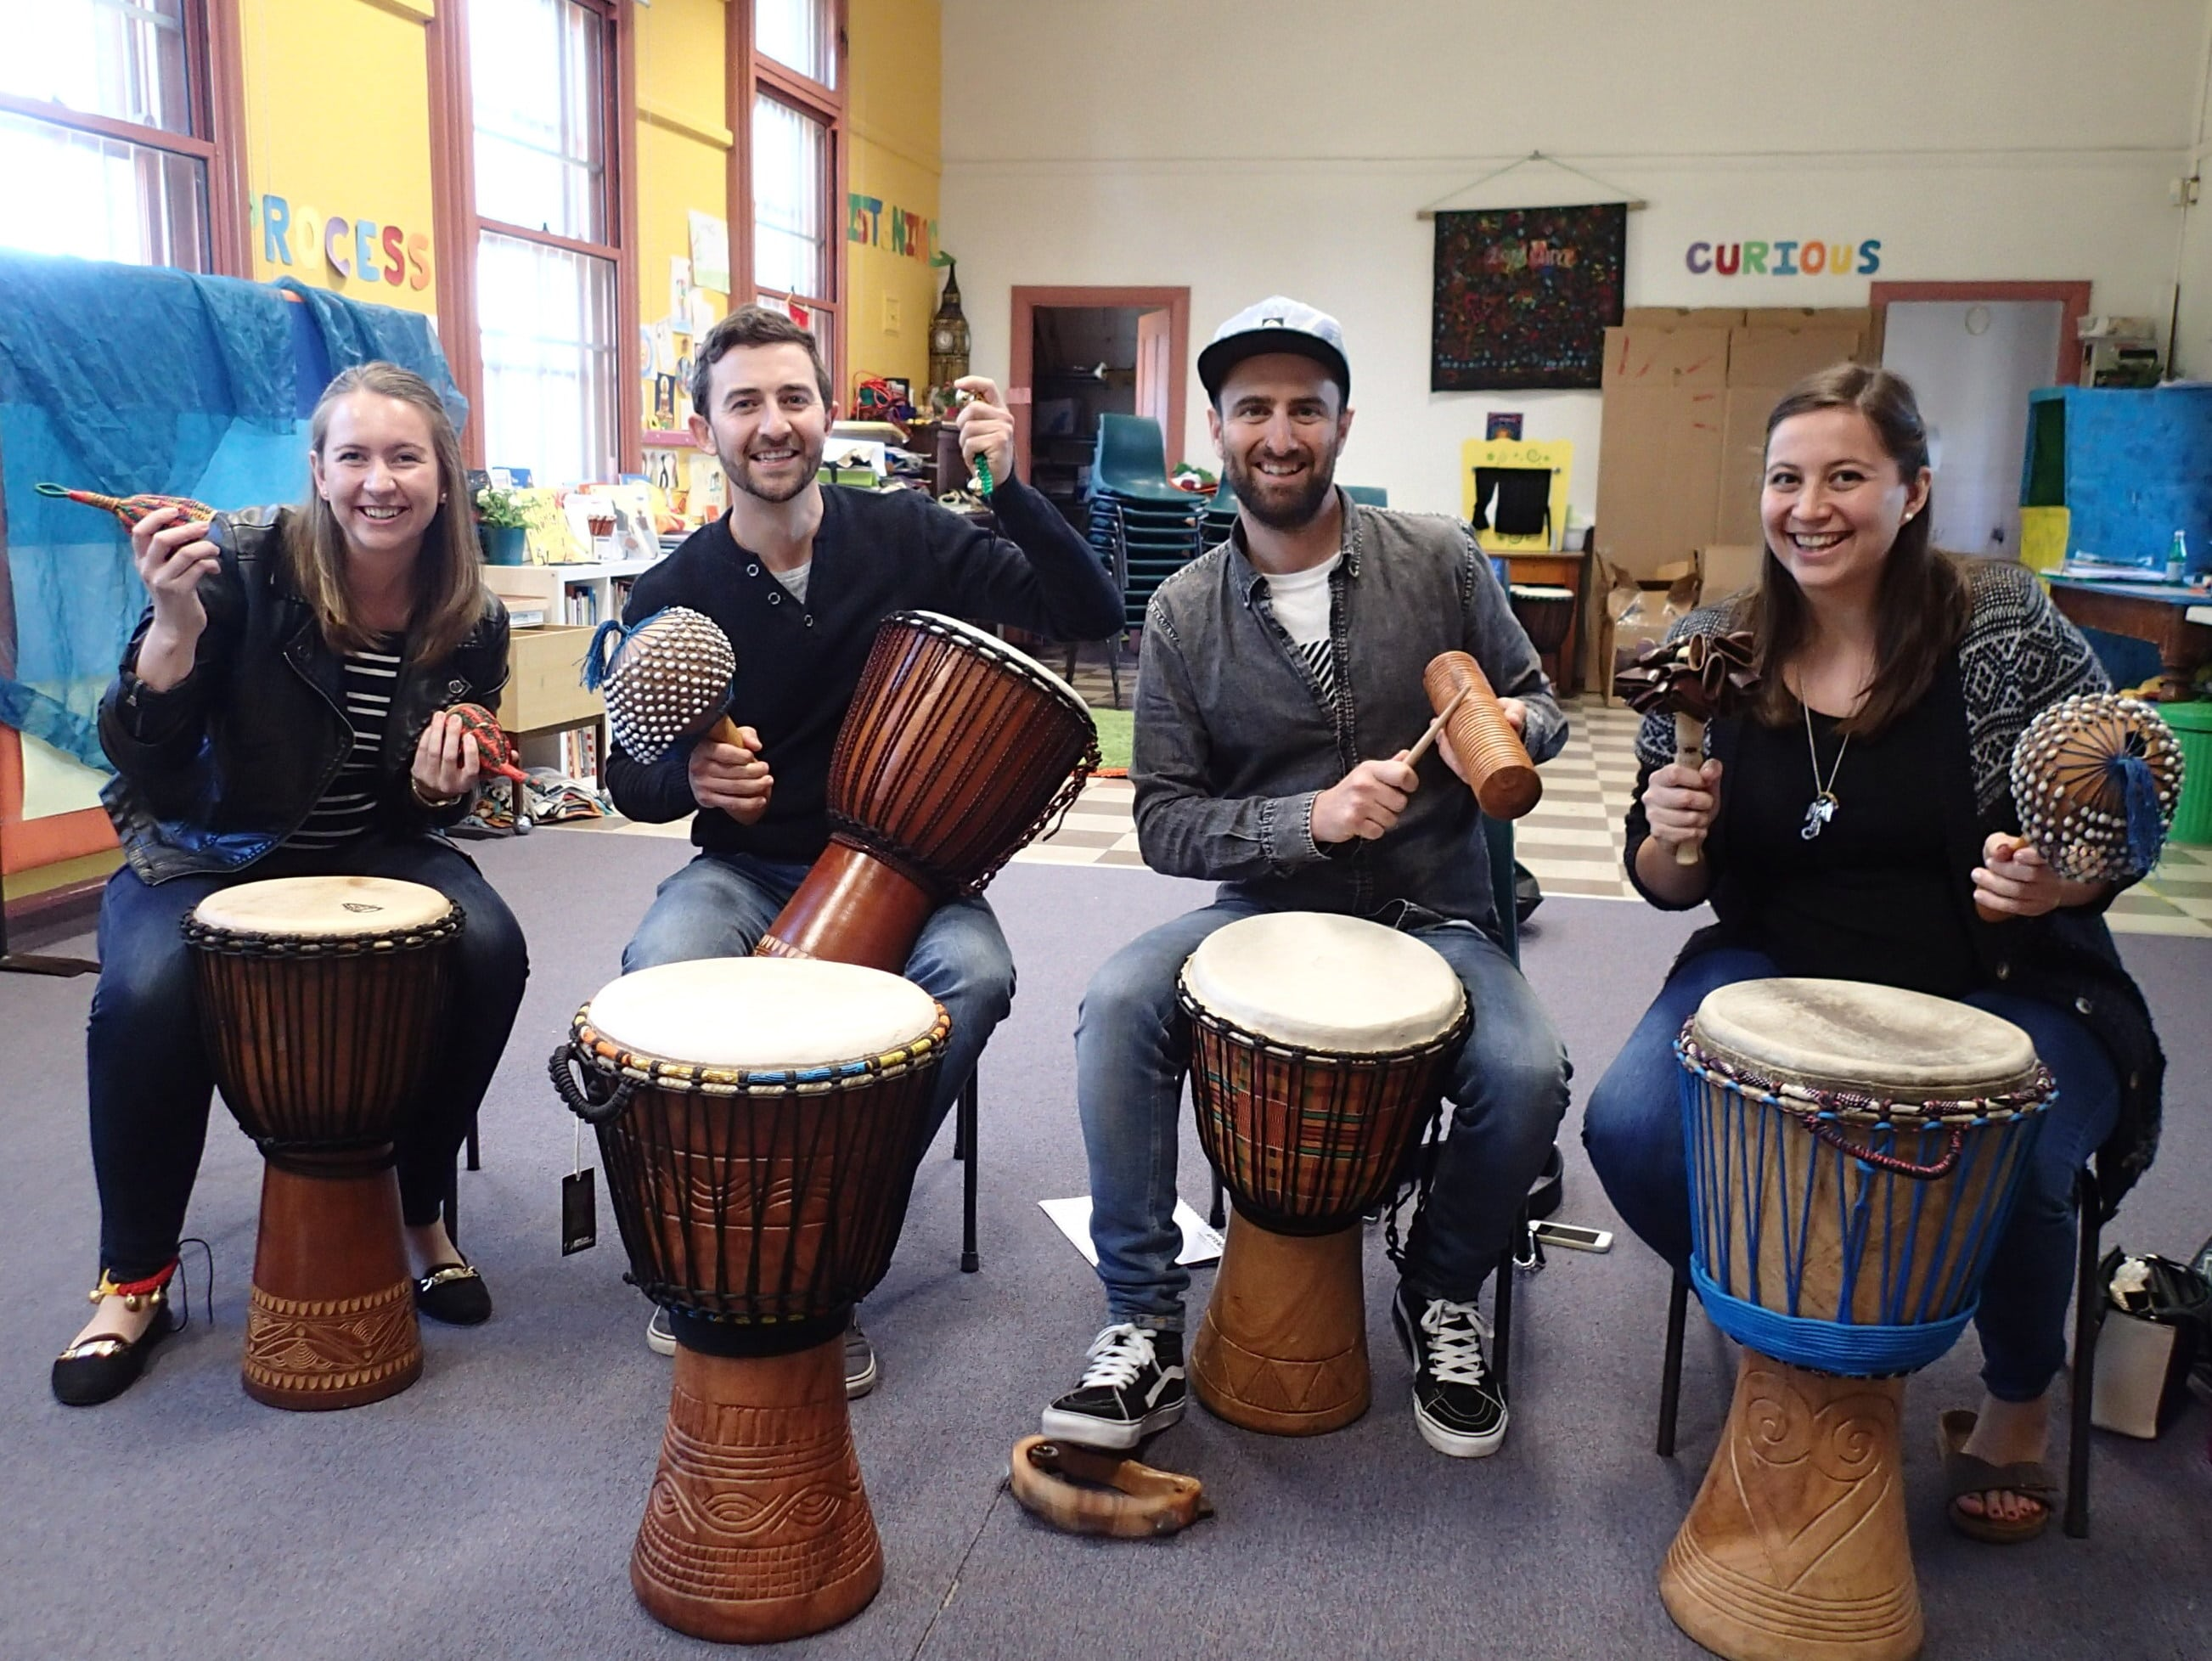 We have introduced a brand new Professional Development workshop called Adjusting to Change, equipping teachers with new musical tools and resources.